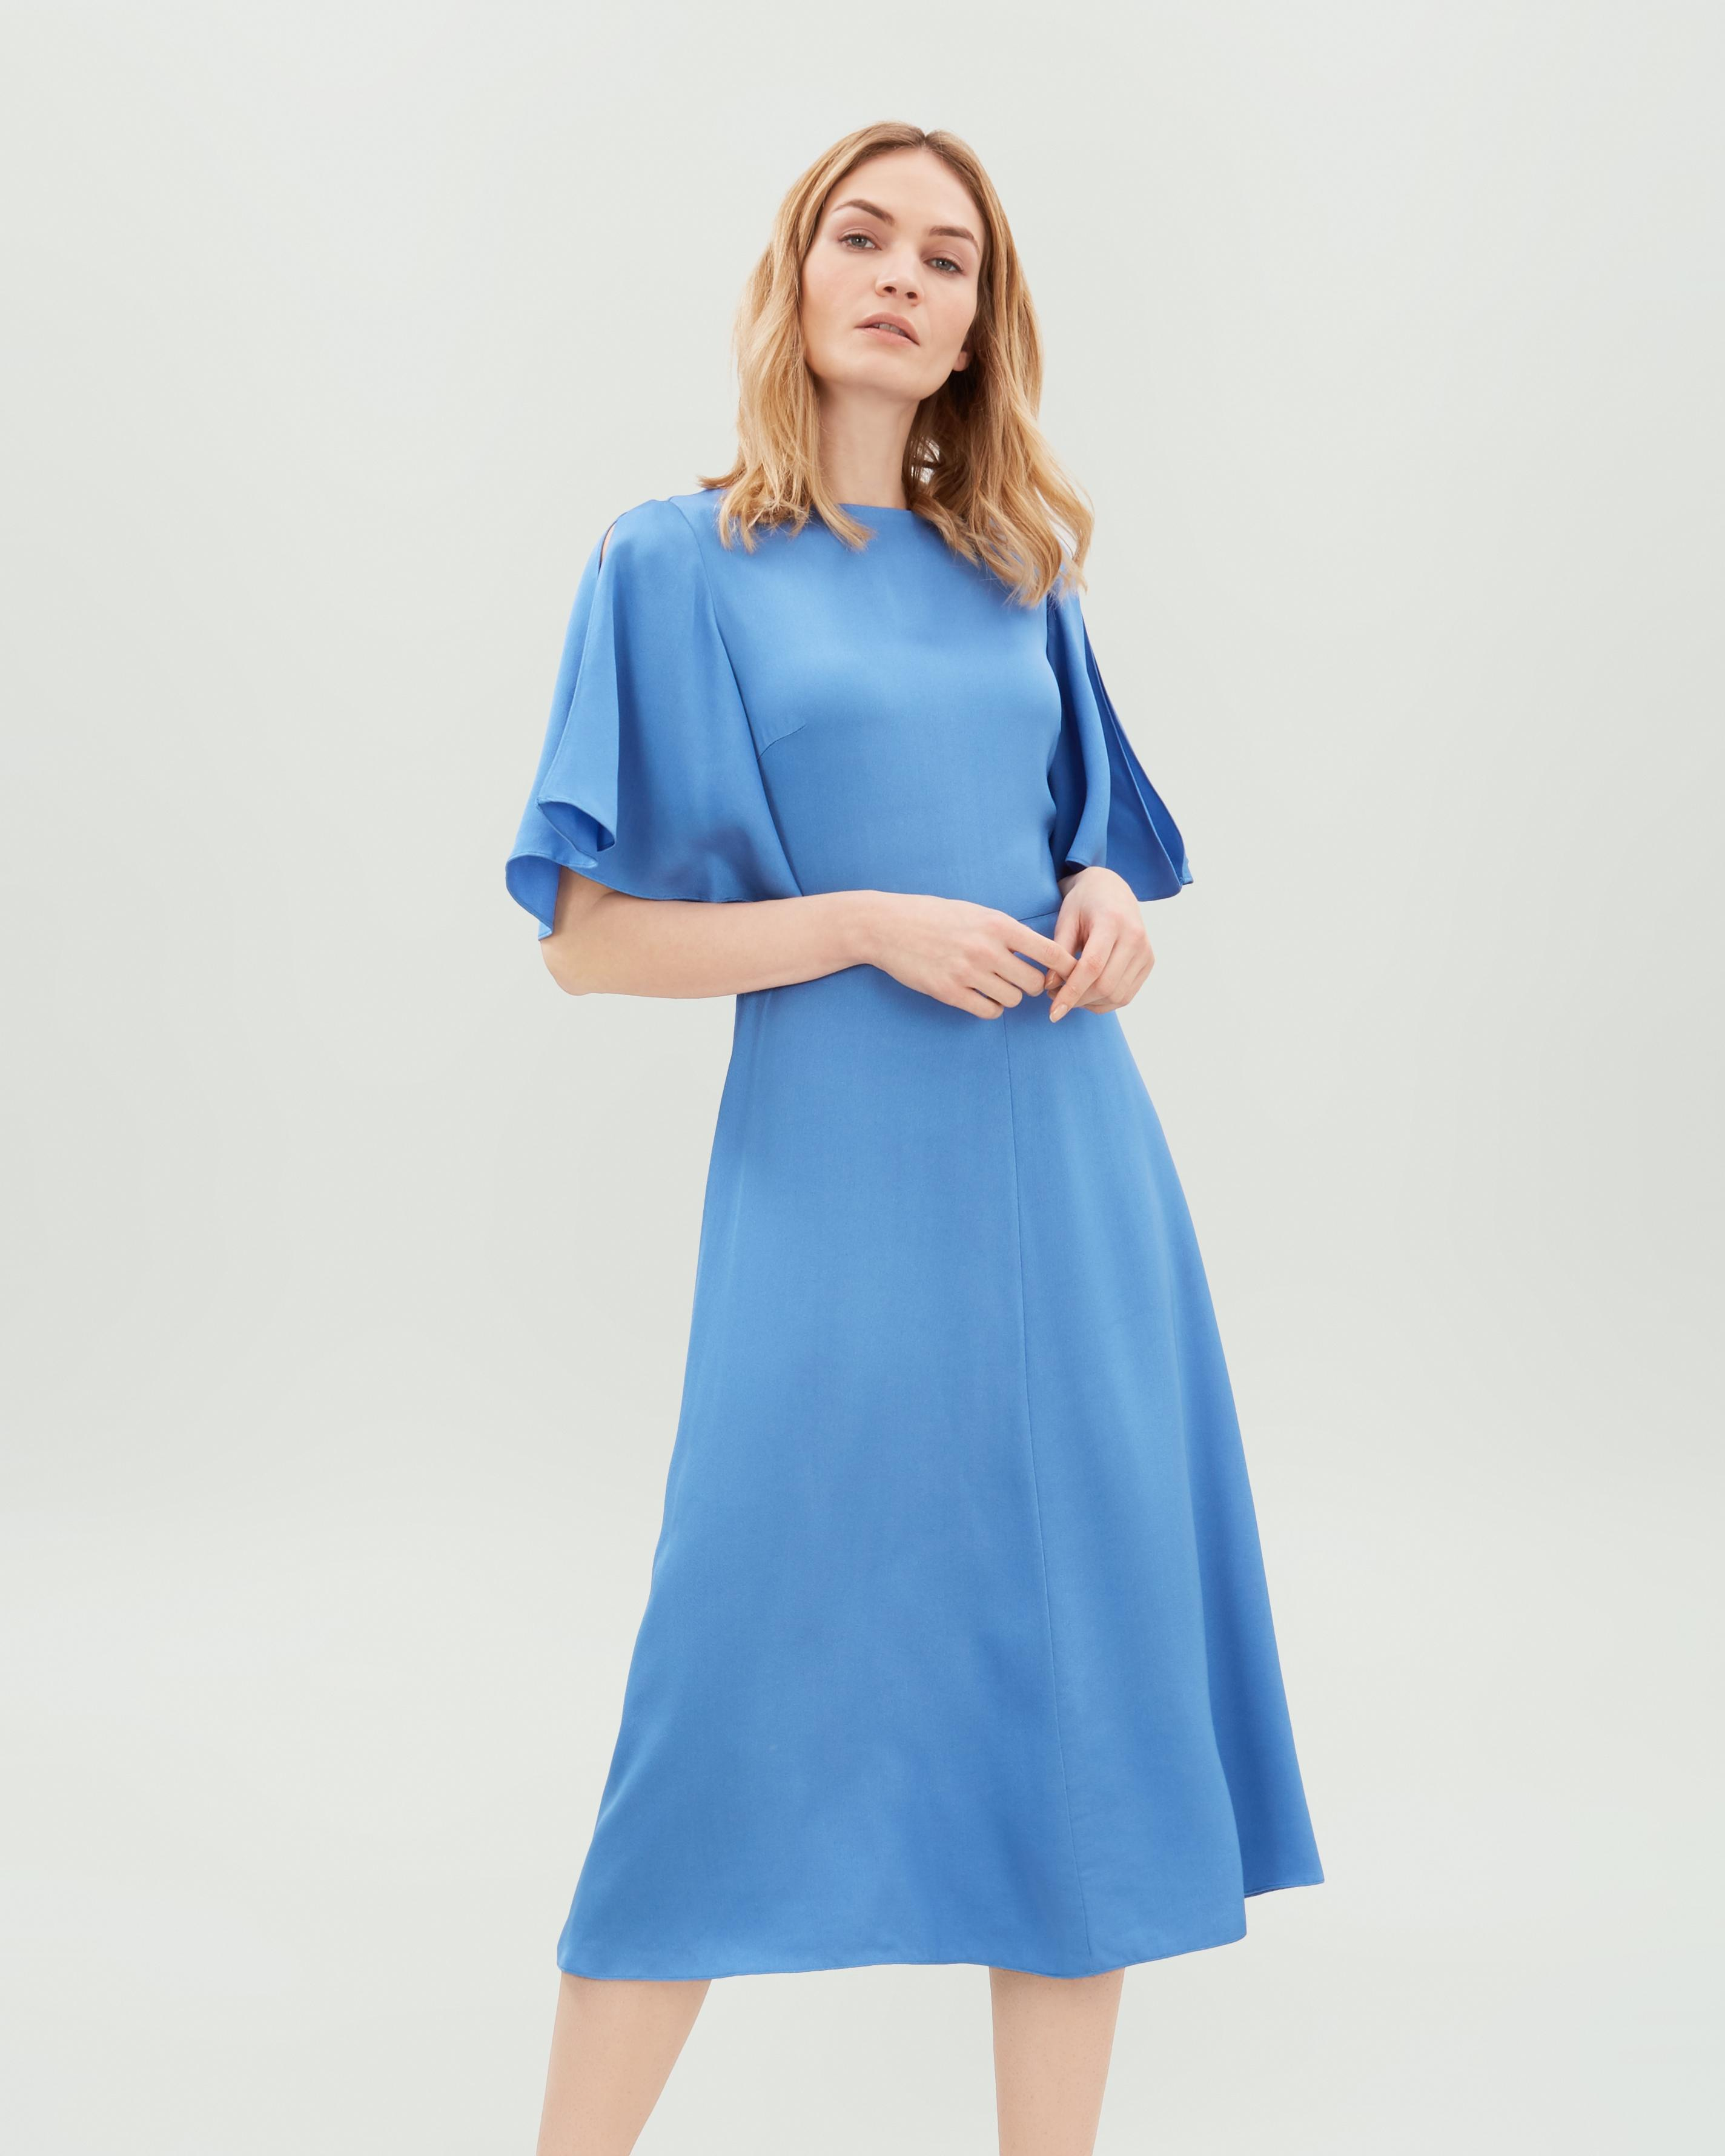 Lyst - Jaeger Fit And Flare Dress in Blue 18ce3a16f